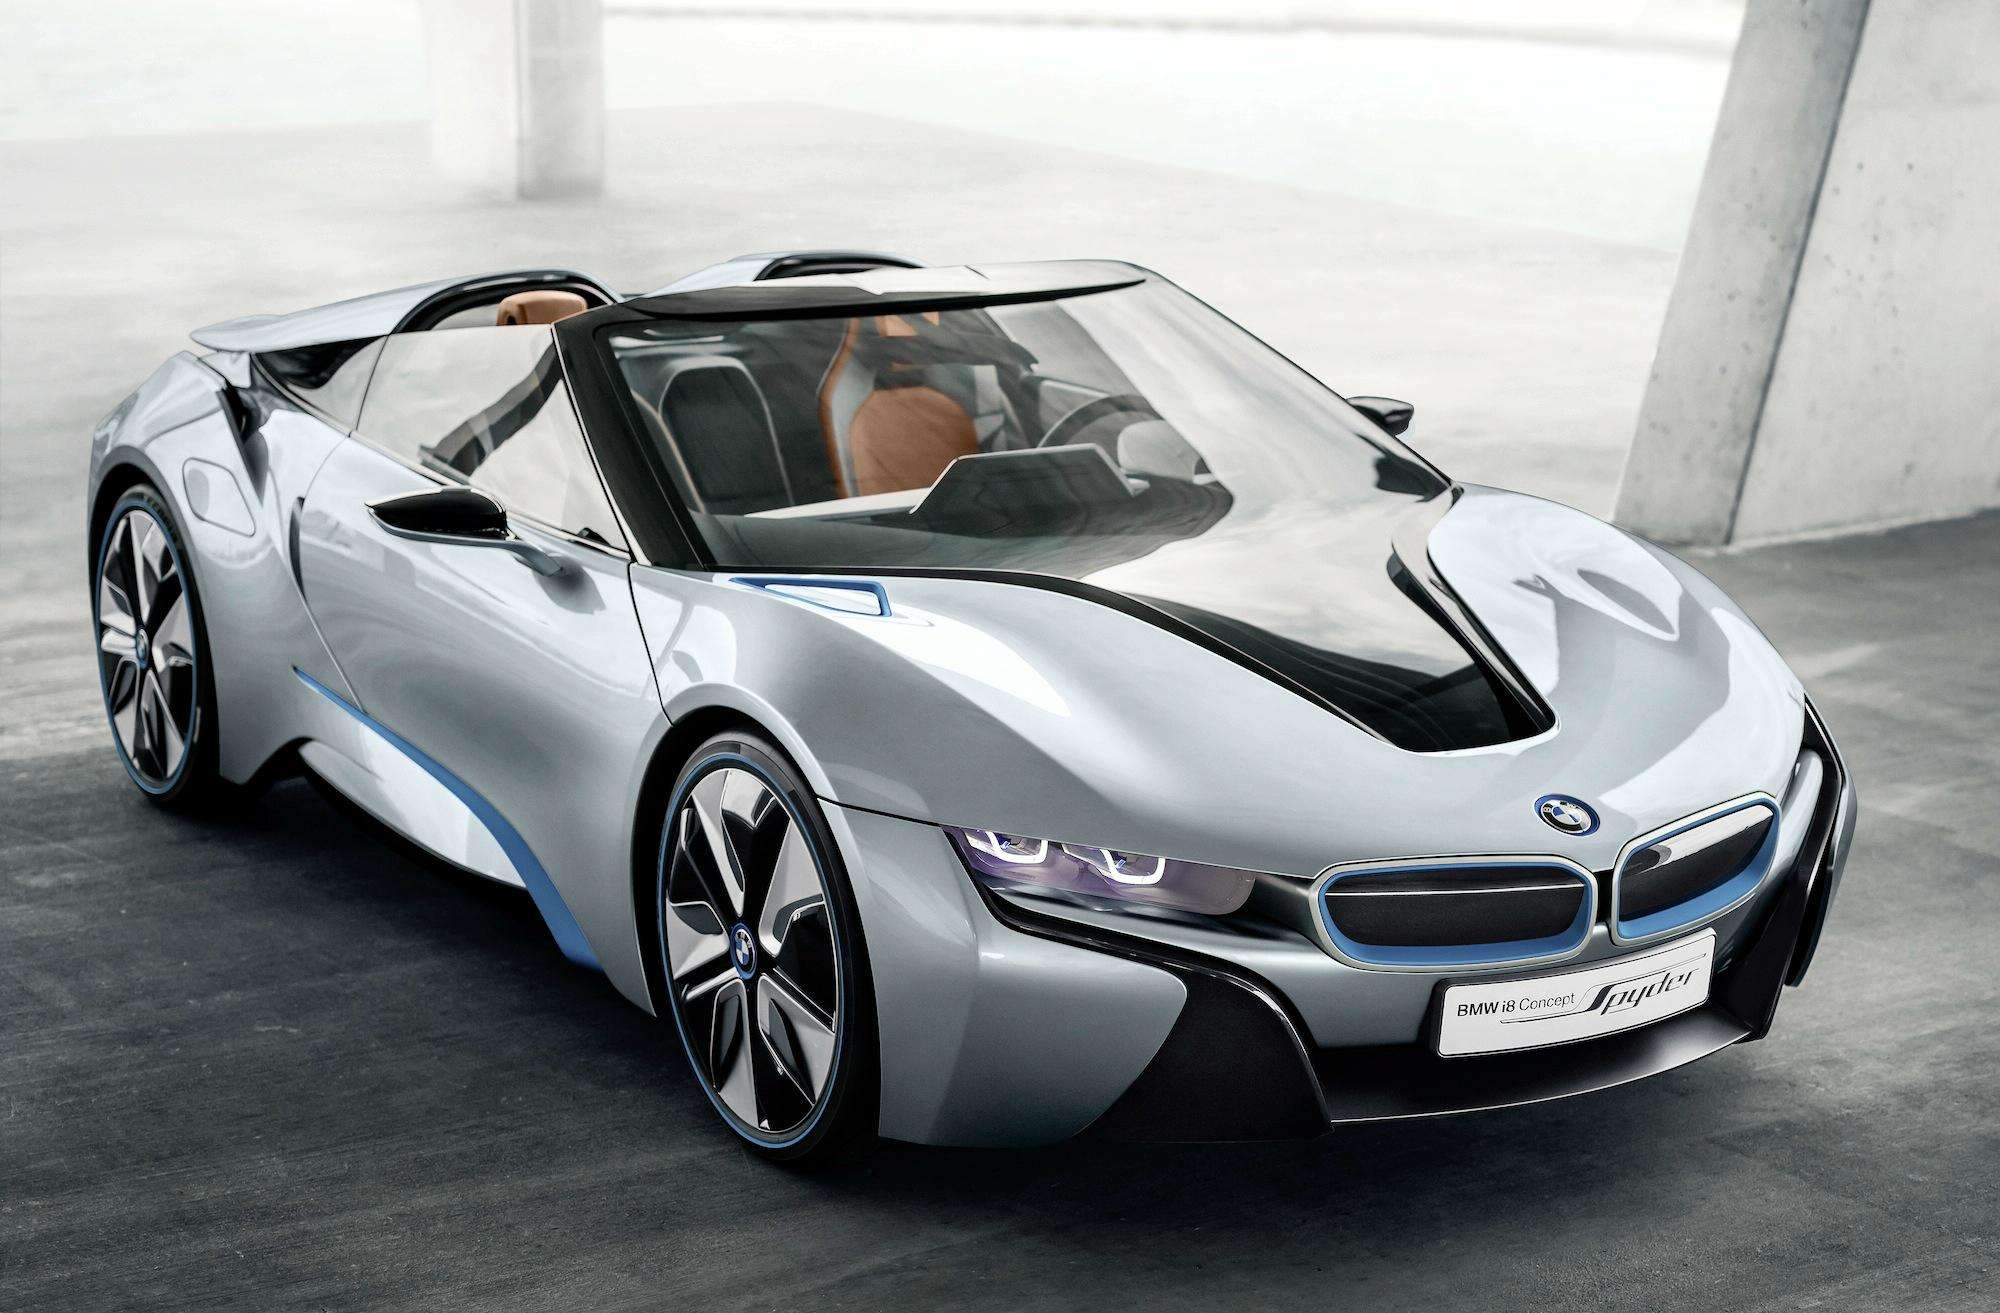 International Bmw S Chinese Dealers Fined Over Price Fixing Auto